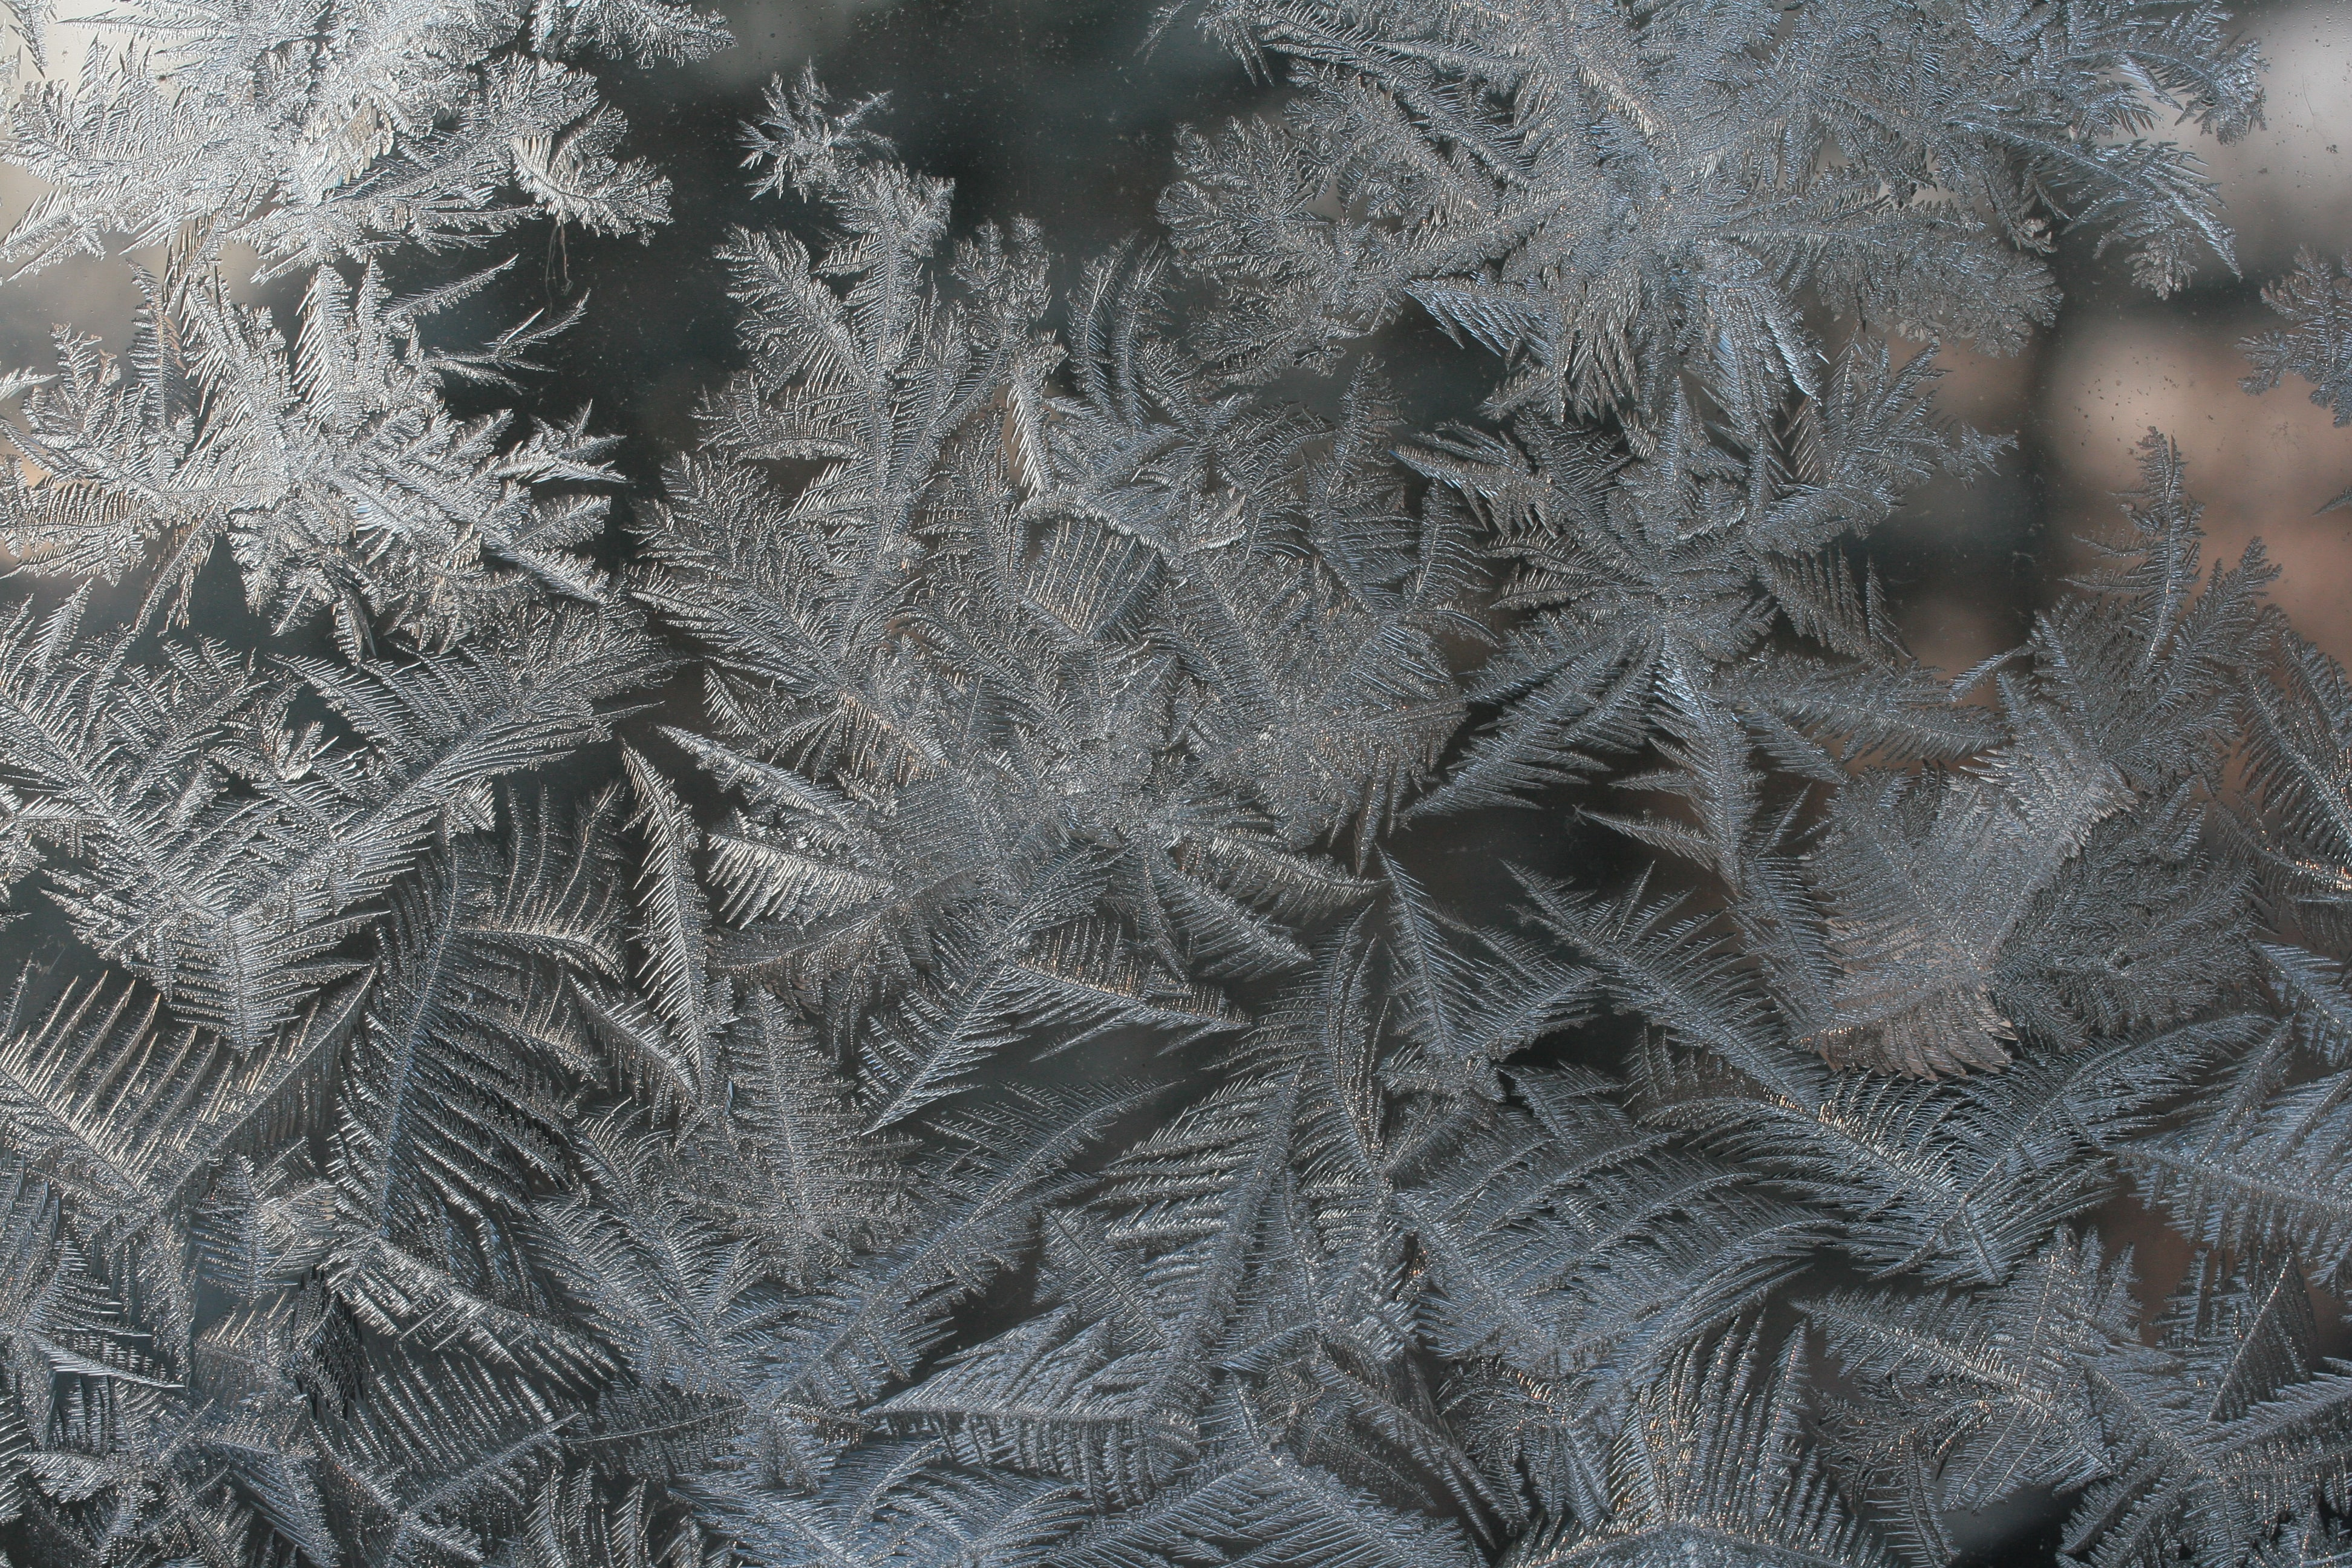 closeup photo of gray fern plant